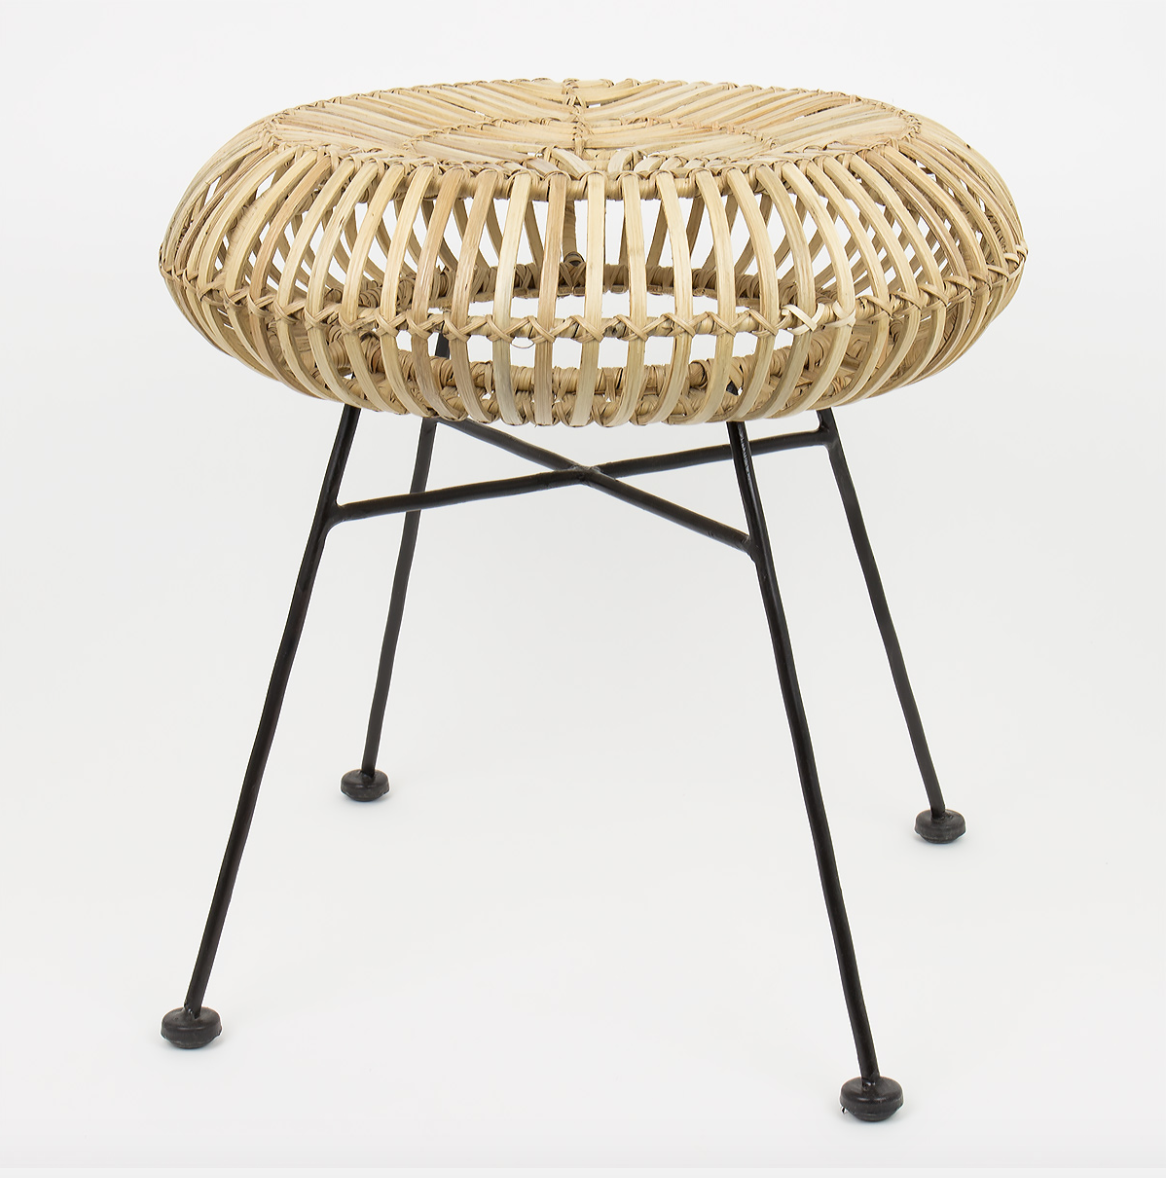 The 'Manila' stool, hand-made in The Philippines, for Afroart. Cane top, iron legs. Approx £75.